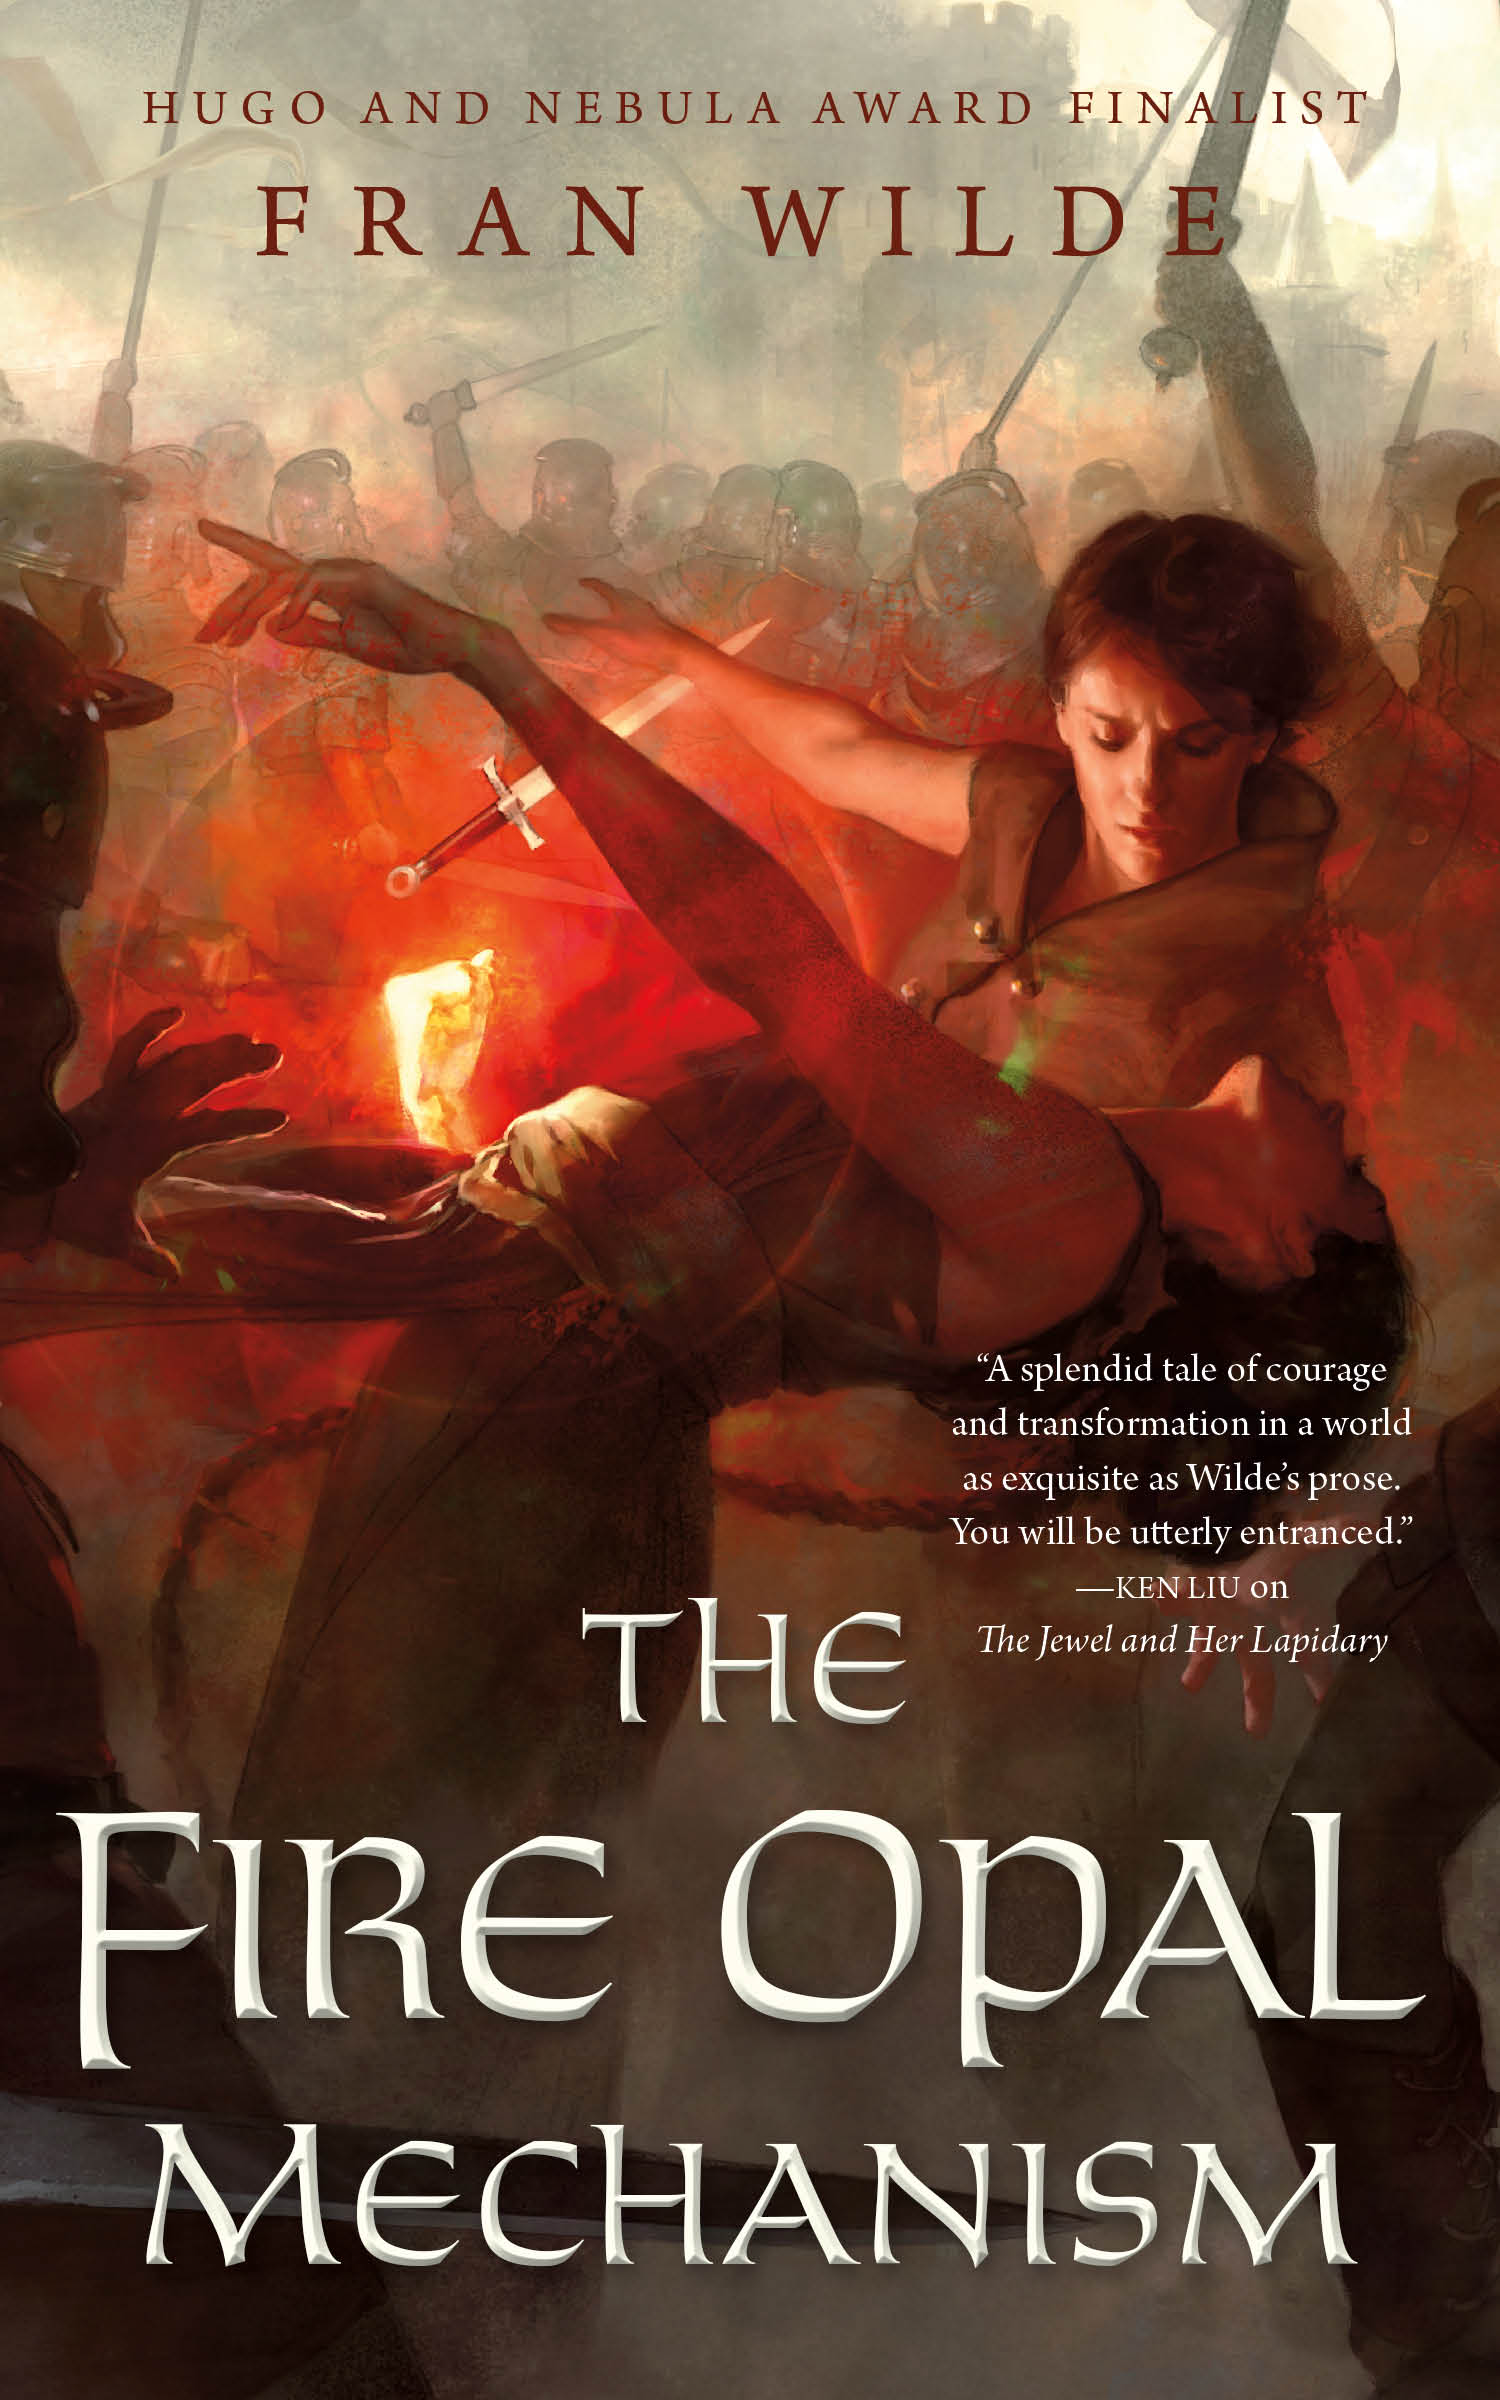 The Fire Opal Mechanism cover image